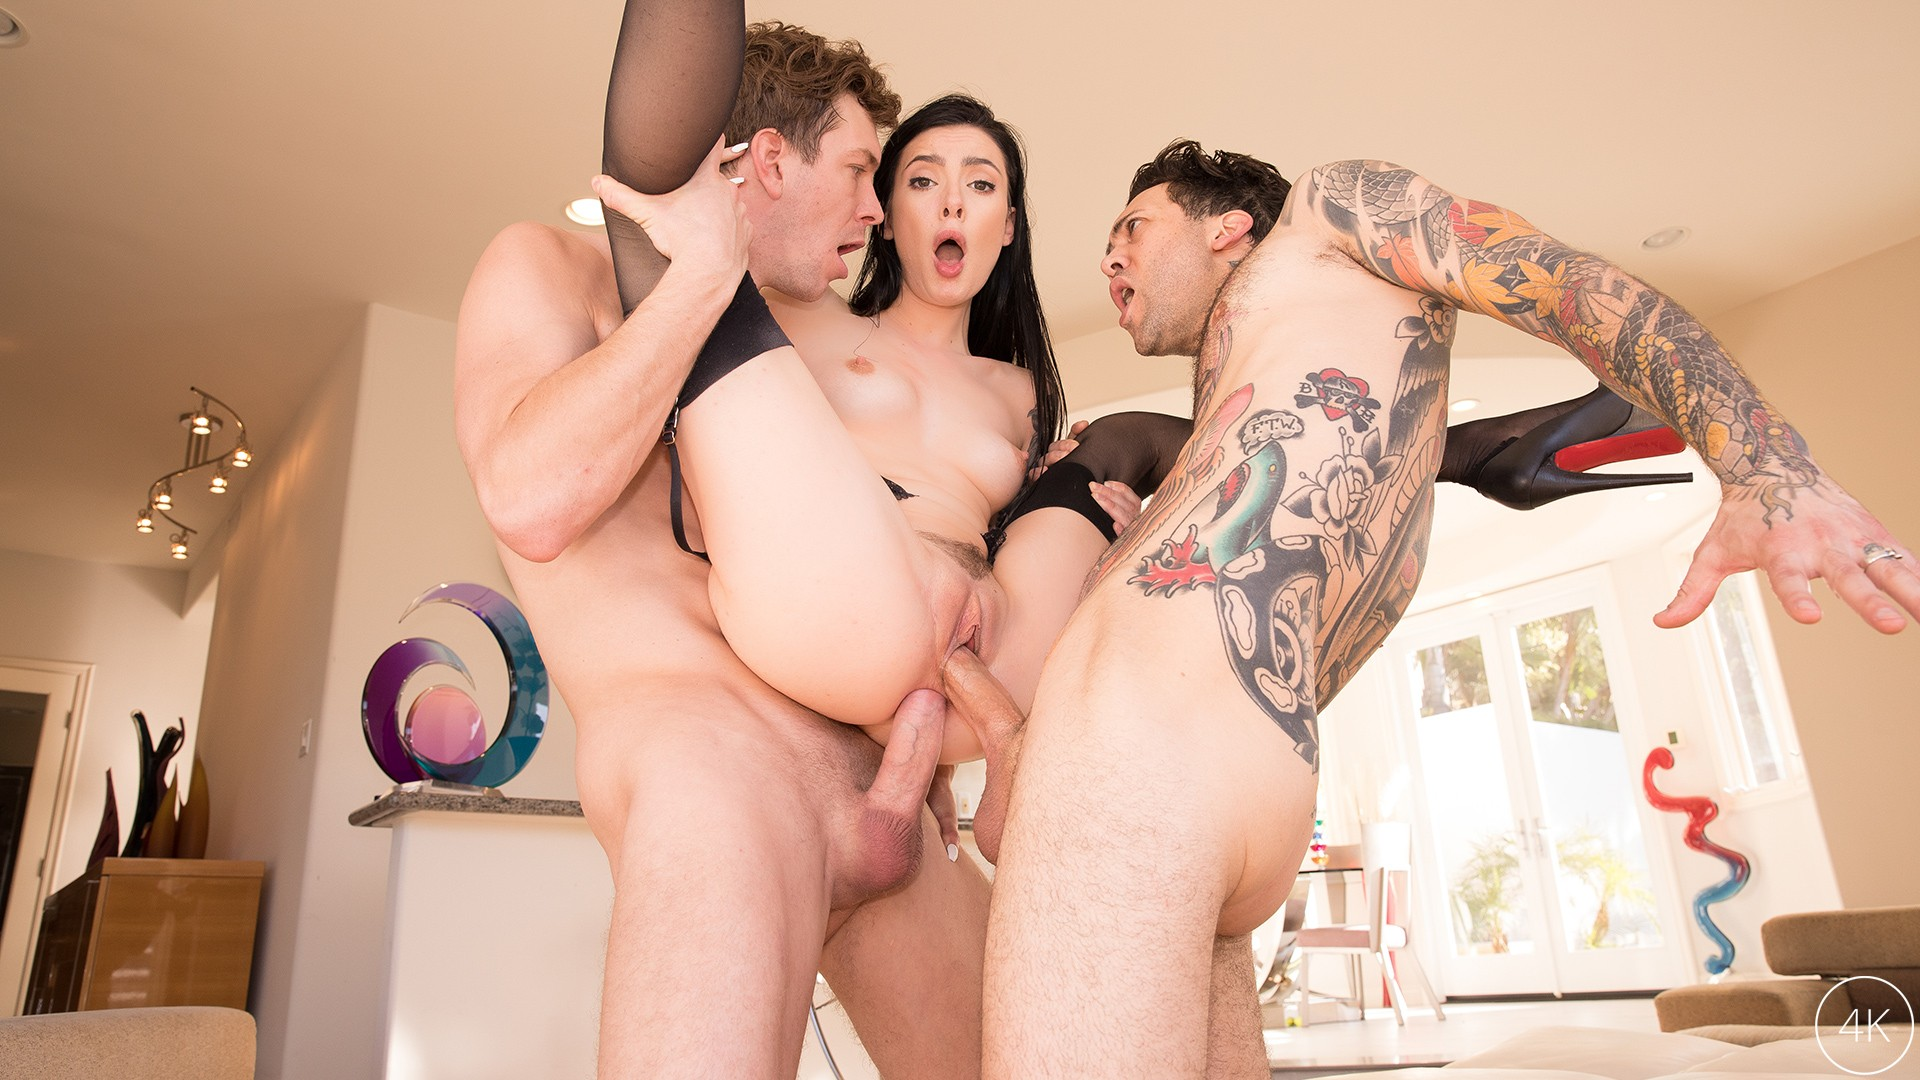 JulesJordan.com - Marley Brinx Receives An Intense DP